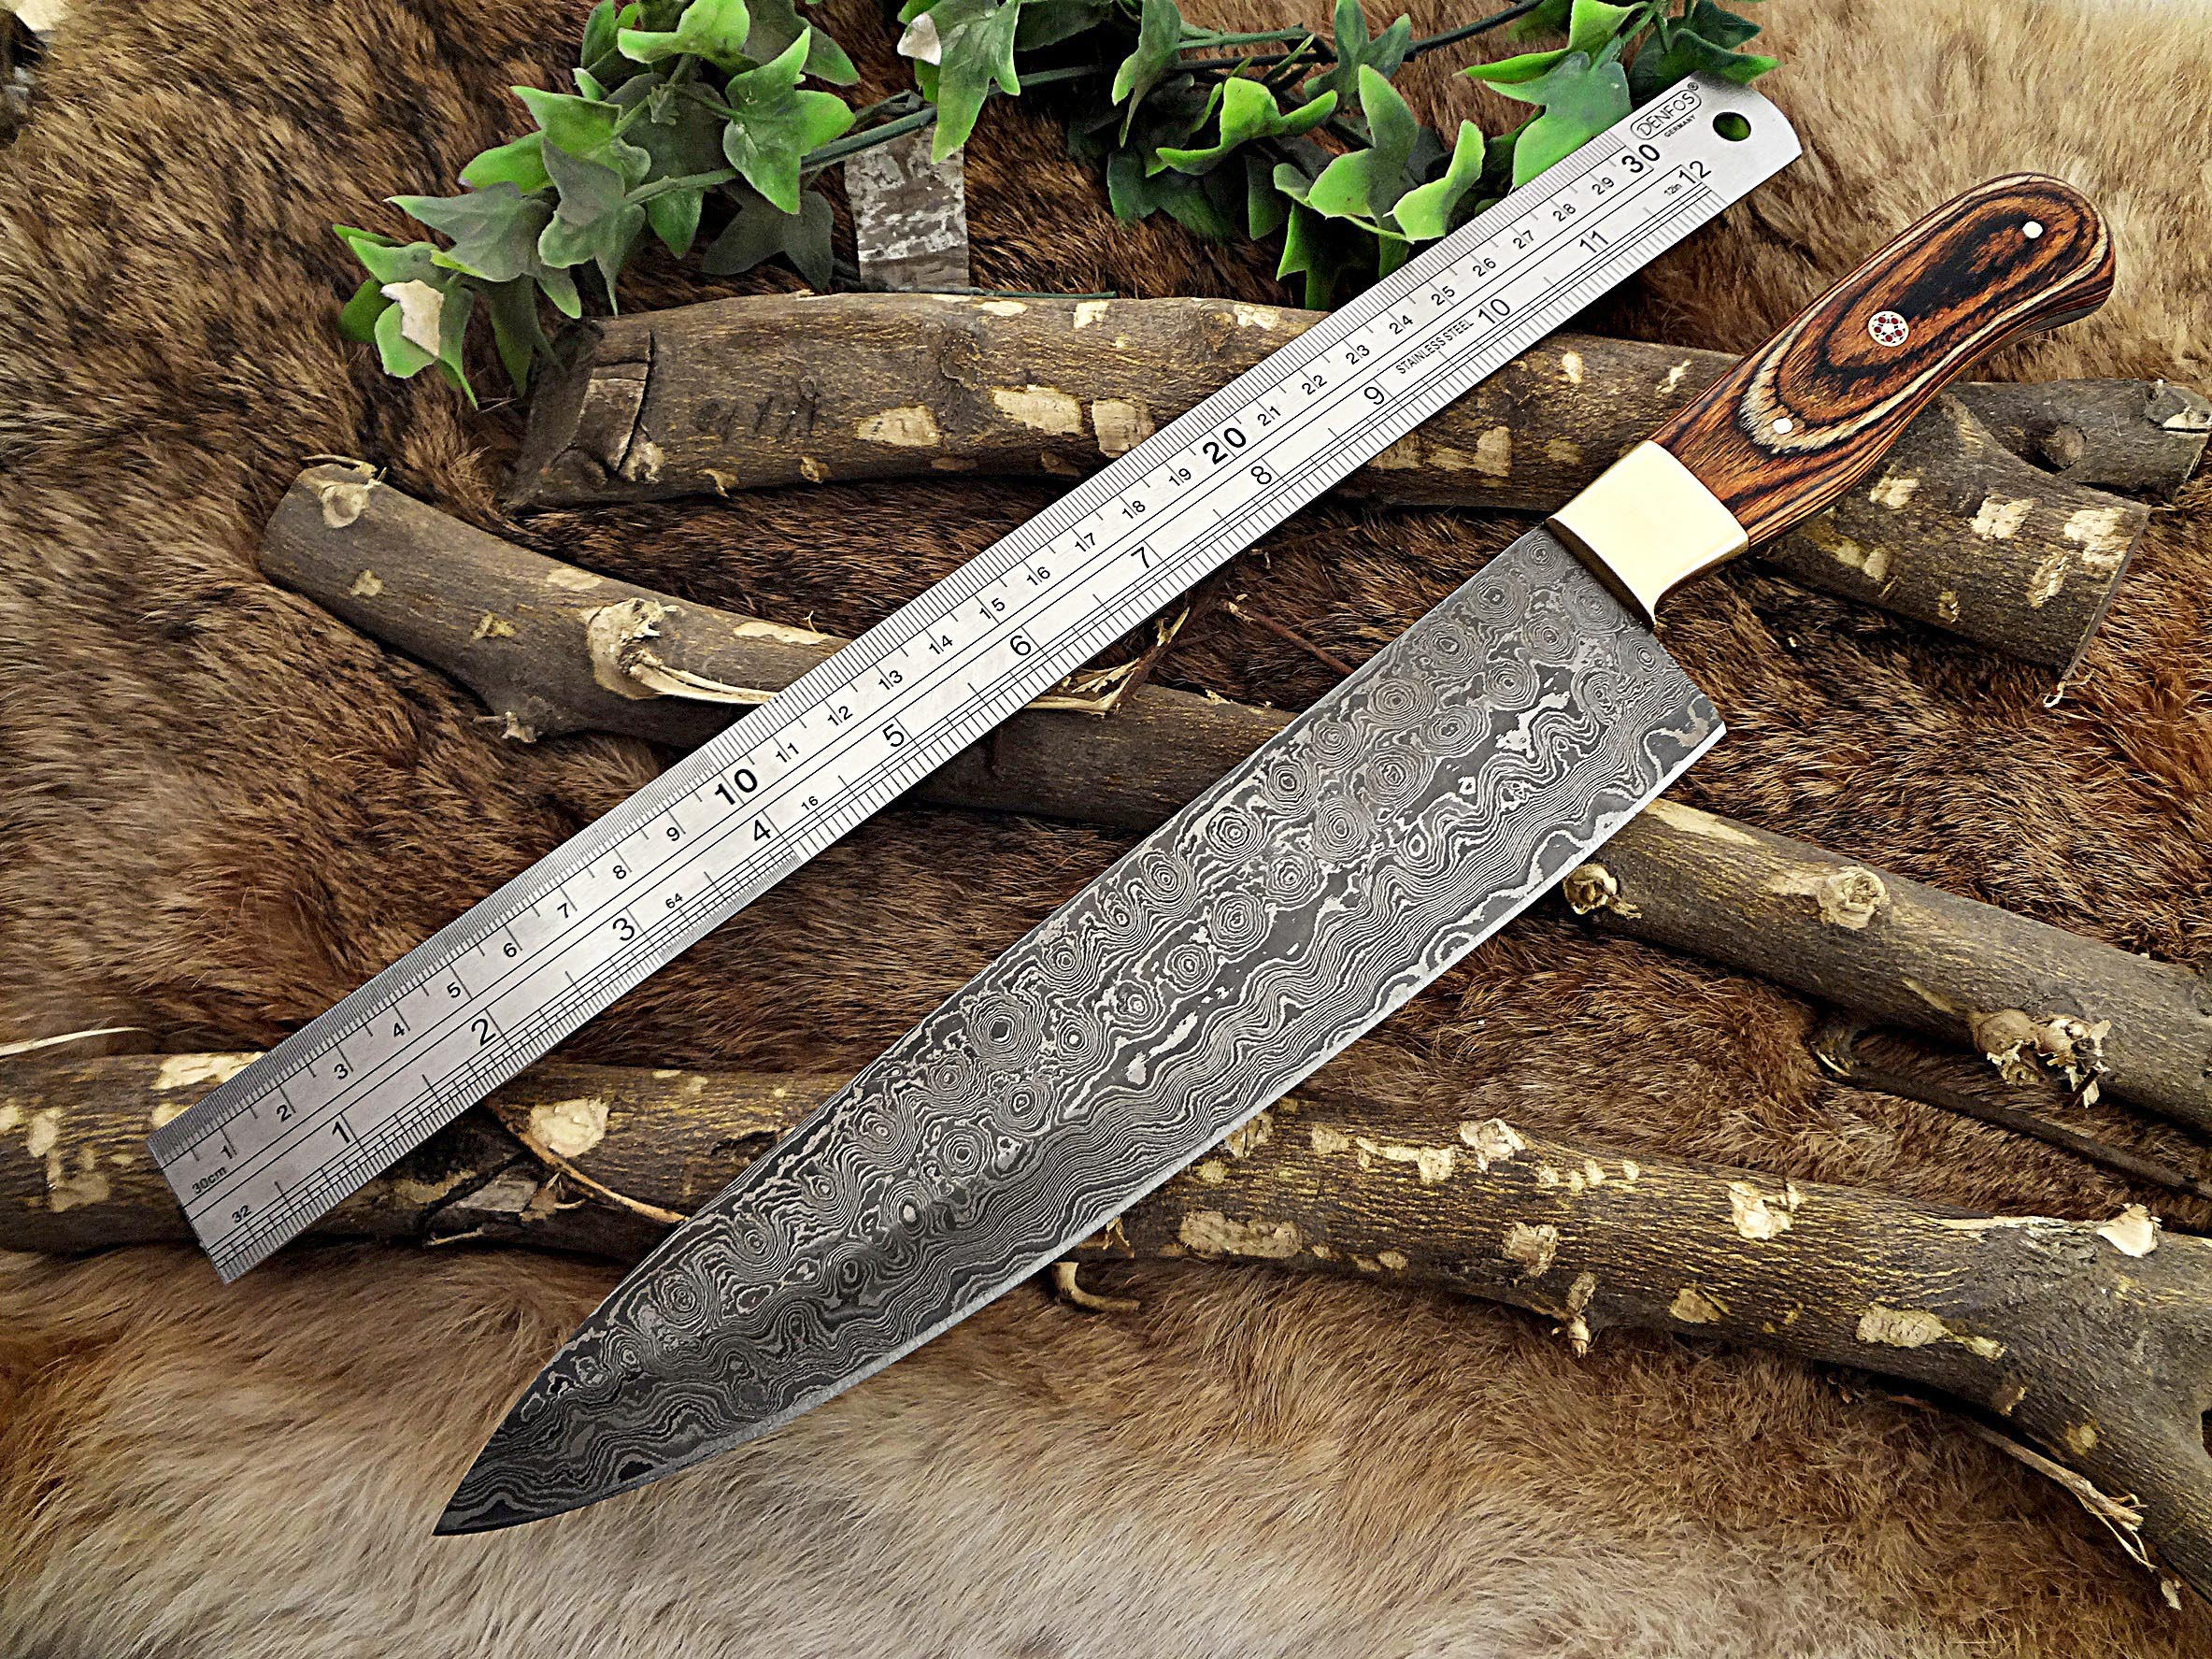 Damascus Steel Kitchen Knife 13 Inches Full Tang 8 5 Long